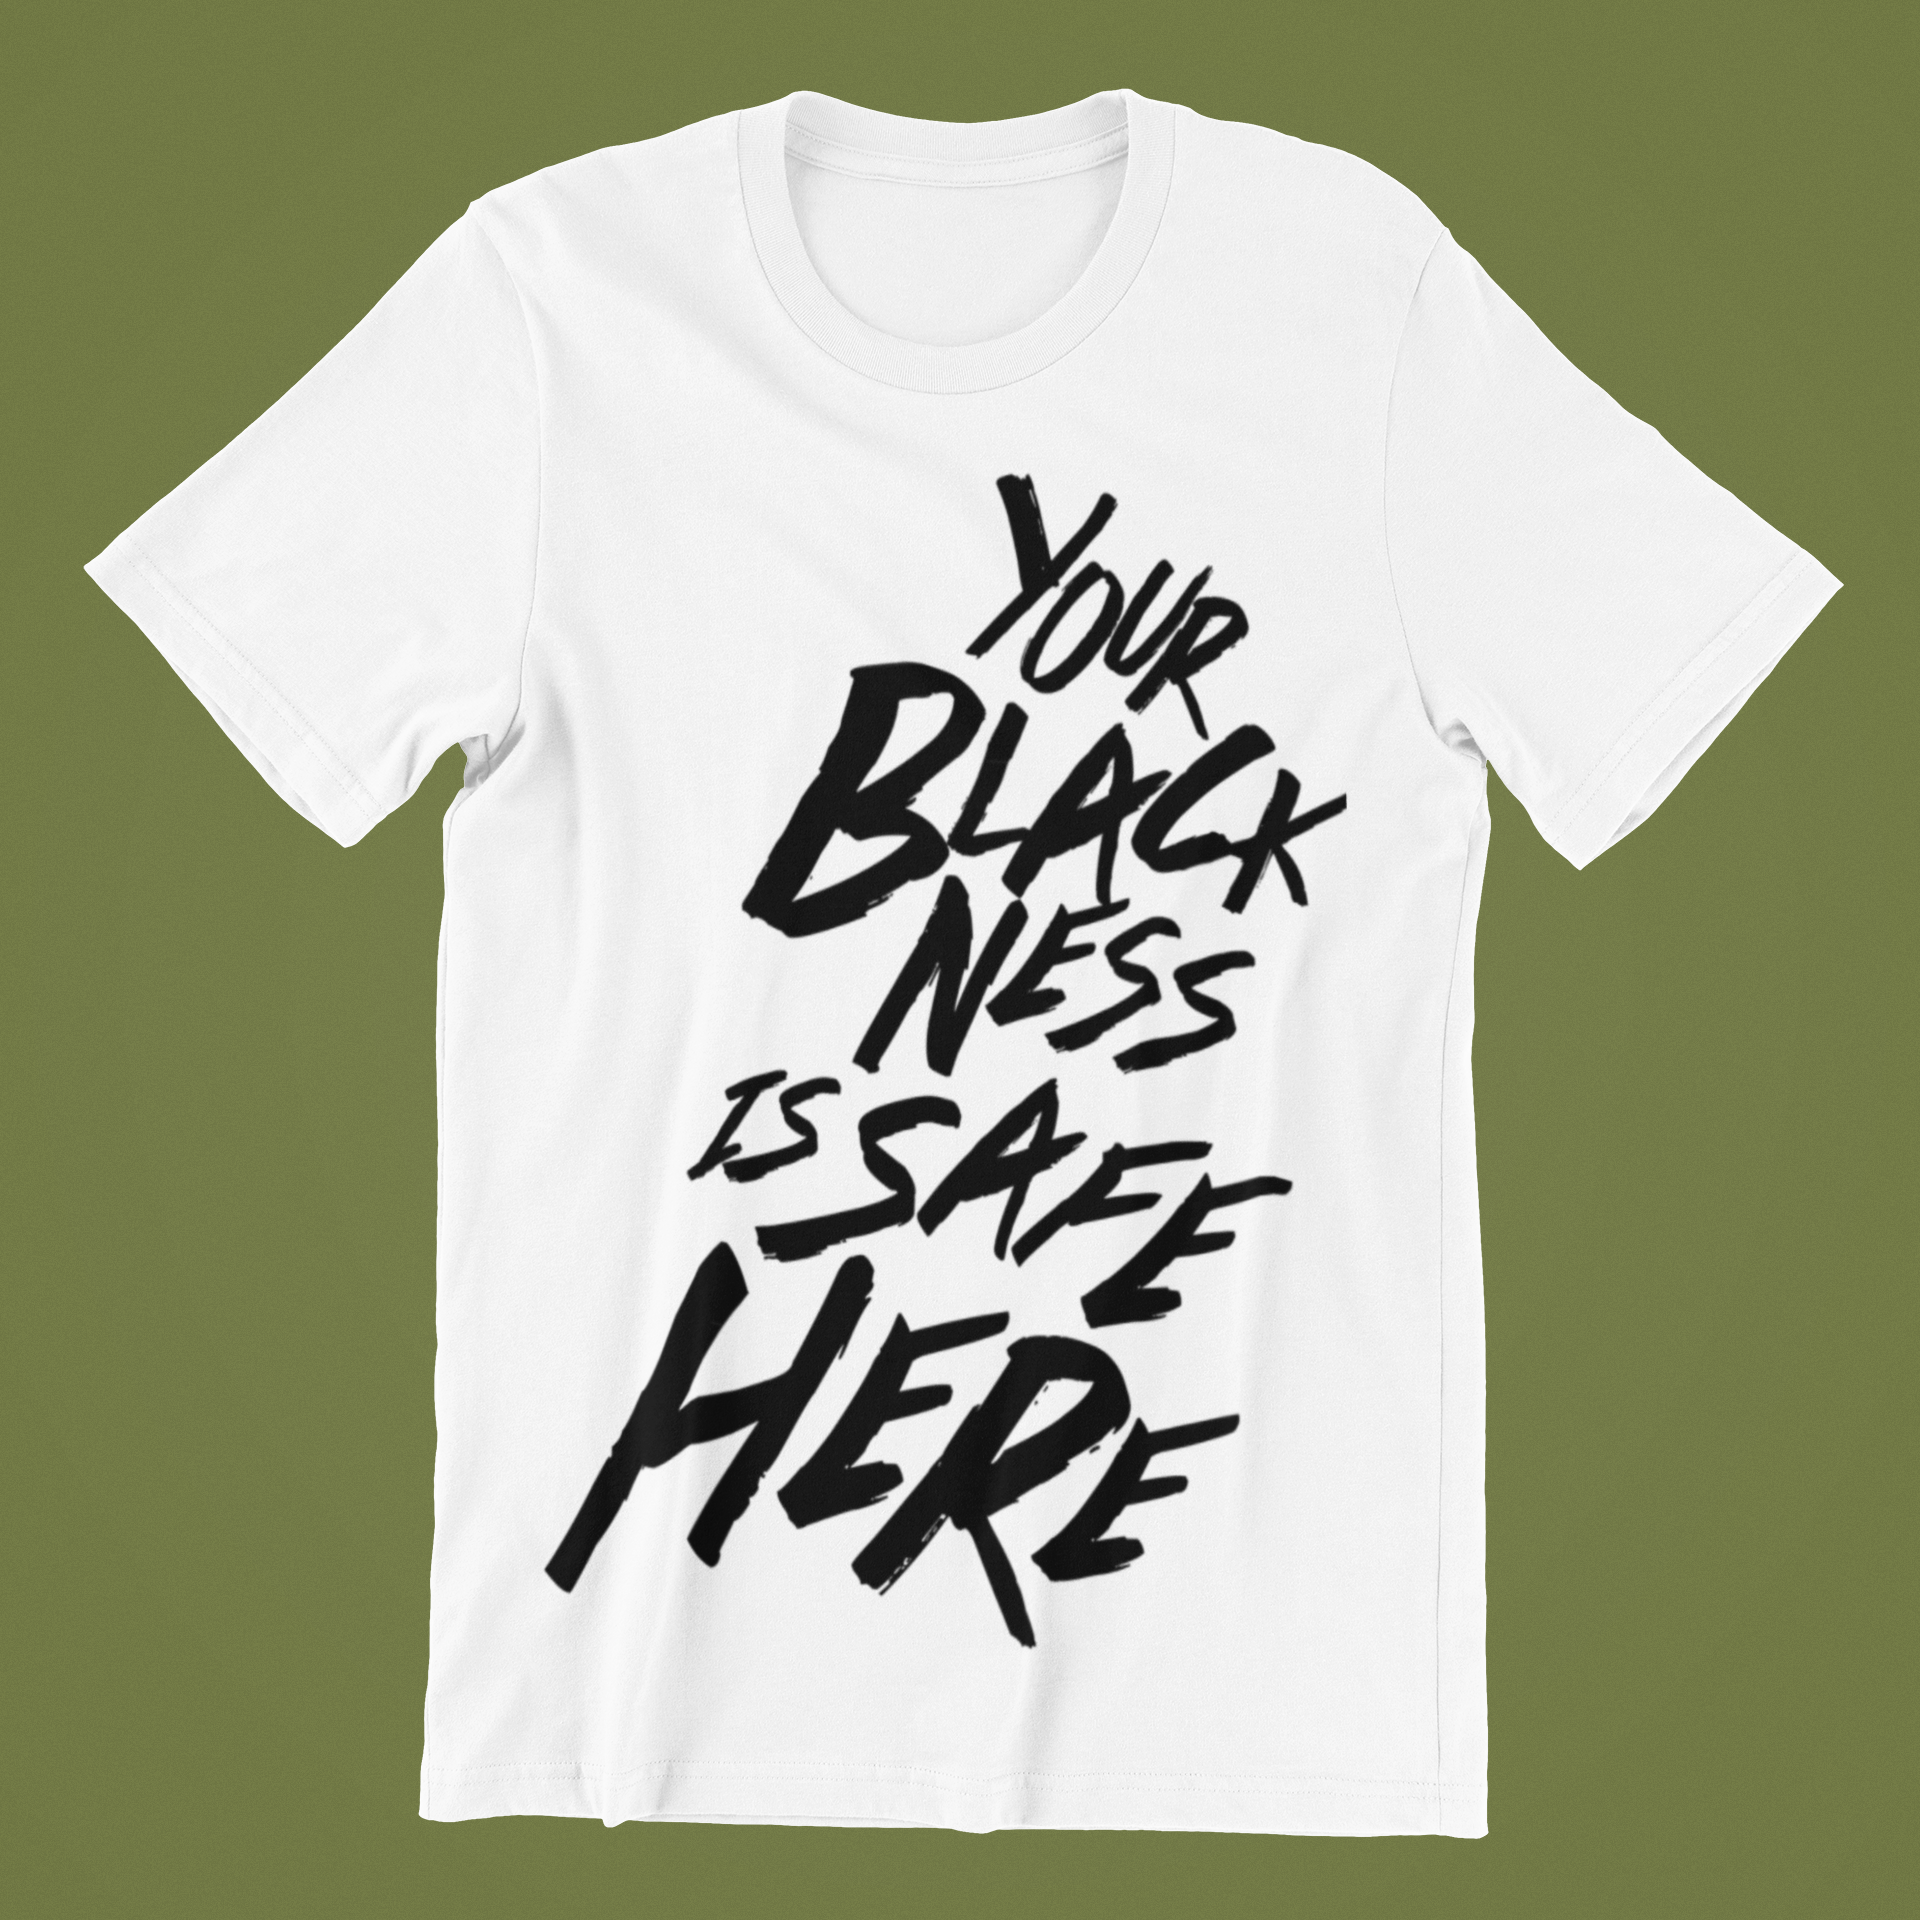 Your Blackness Is Safe Here T-shirt